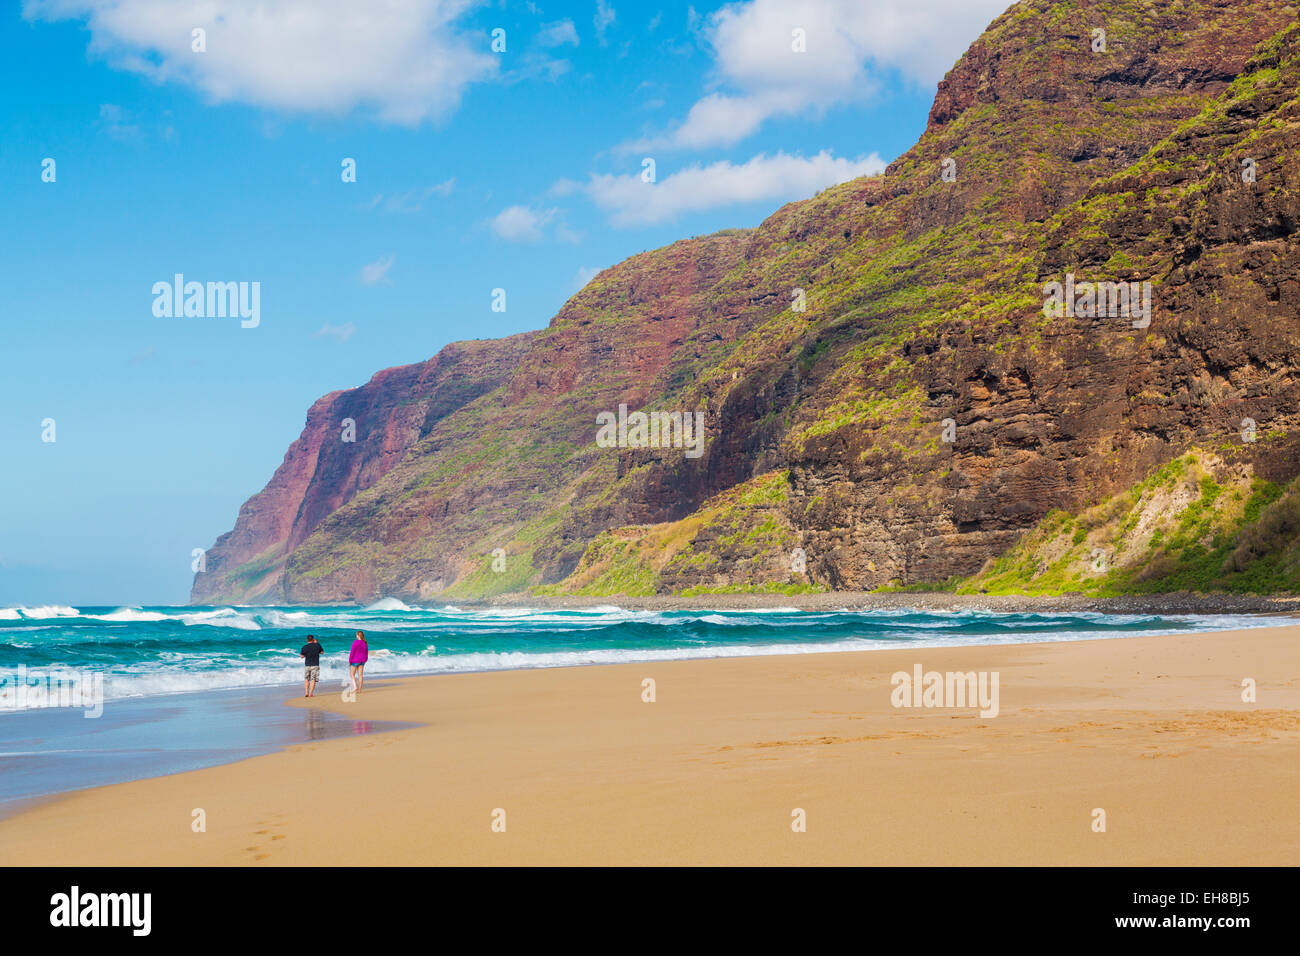 People walking along the sand in waves off the Polihale beach in Kauai, Hawaii - Stock Image